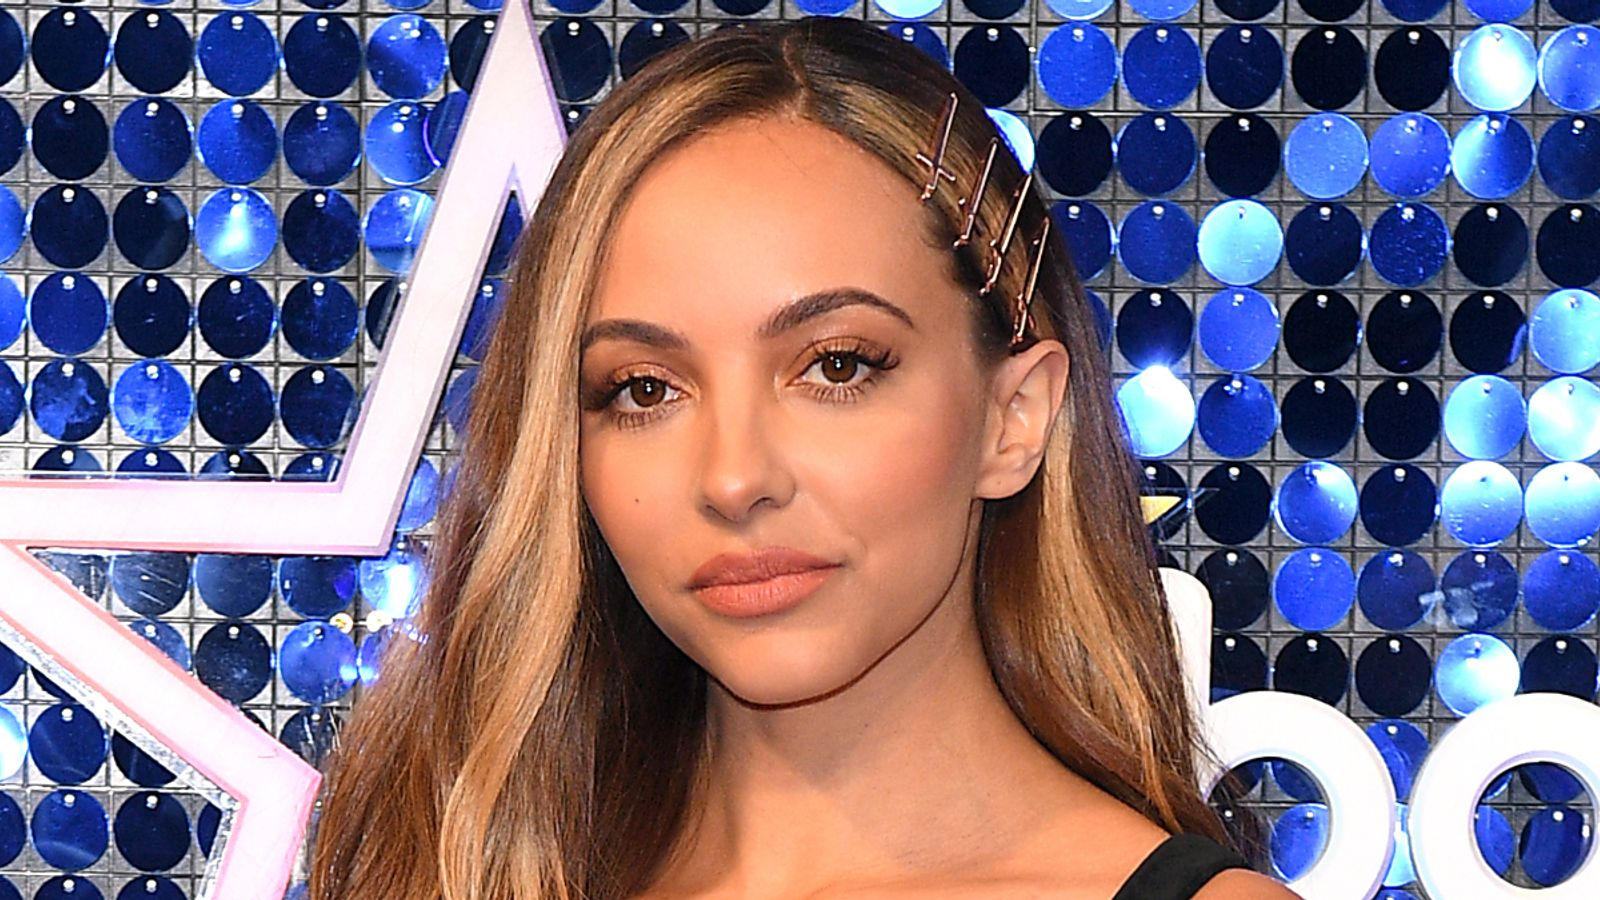 Little Mix's Jade Thirlwall partners with Unicef to learn about ongoing Yemen conflict